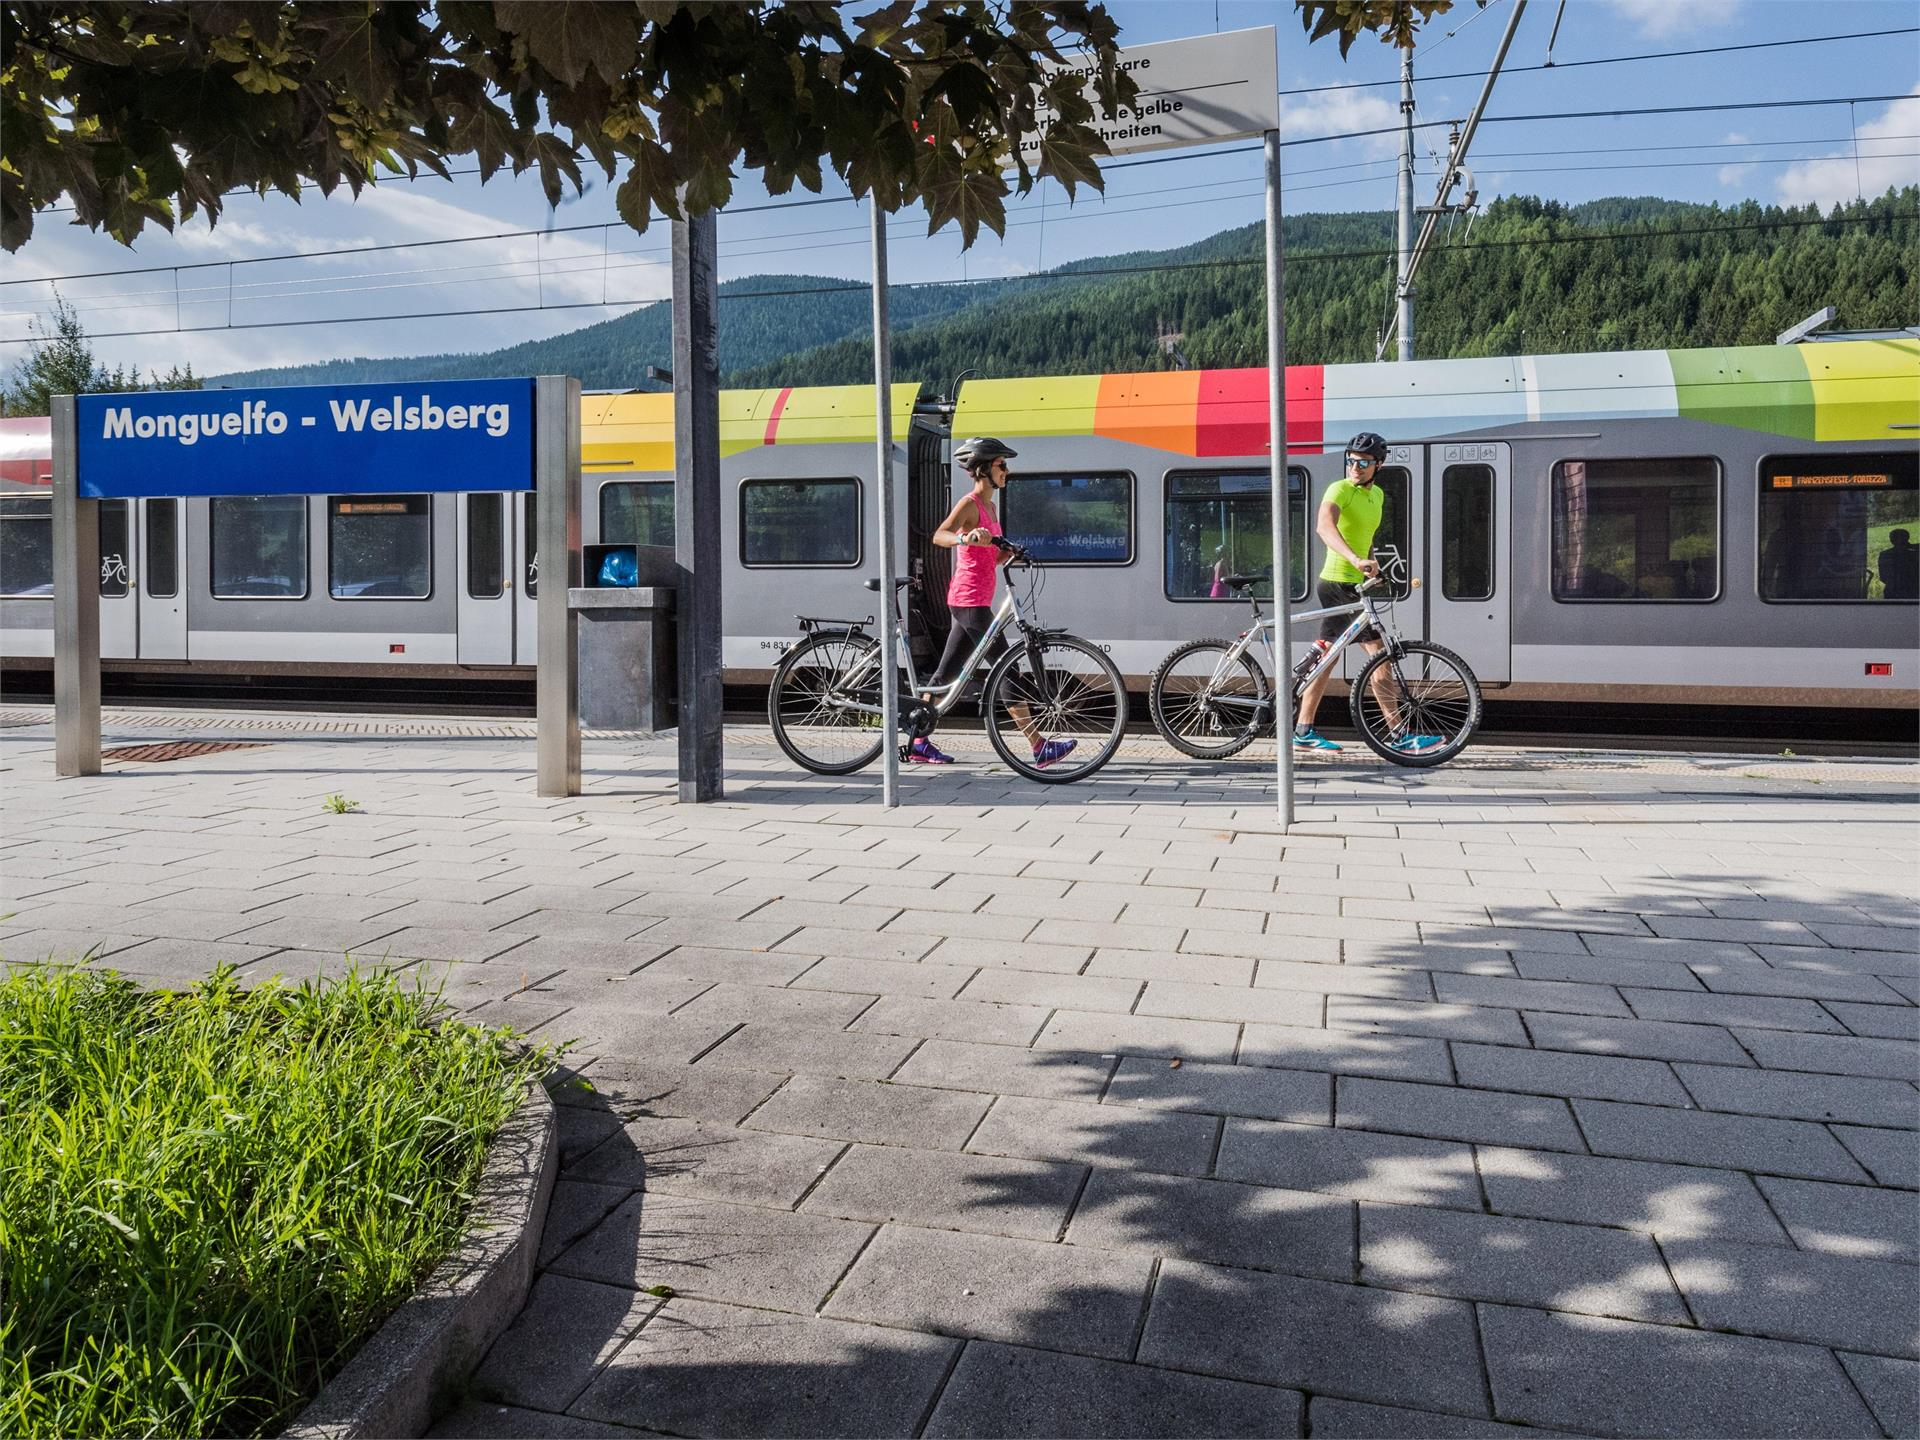 Rent a Bike service point railway station Welsberg